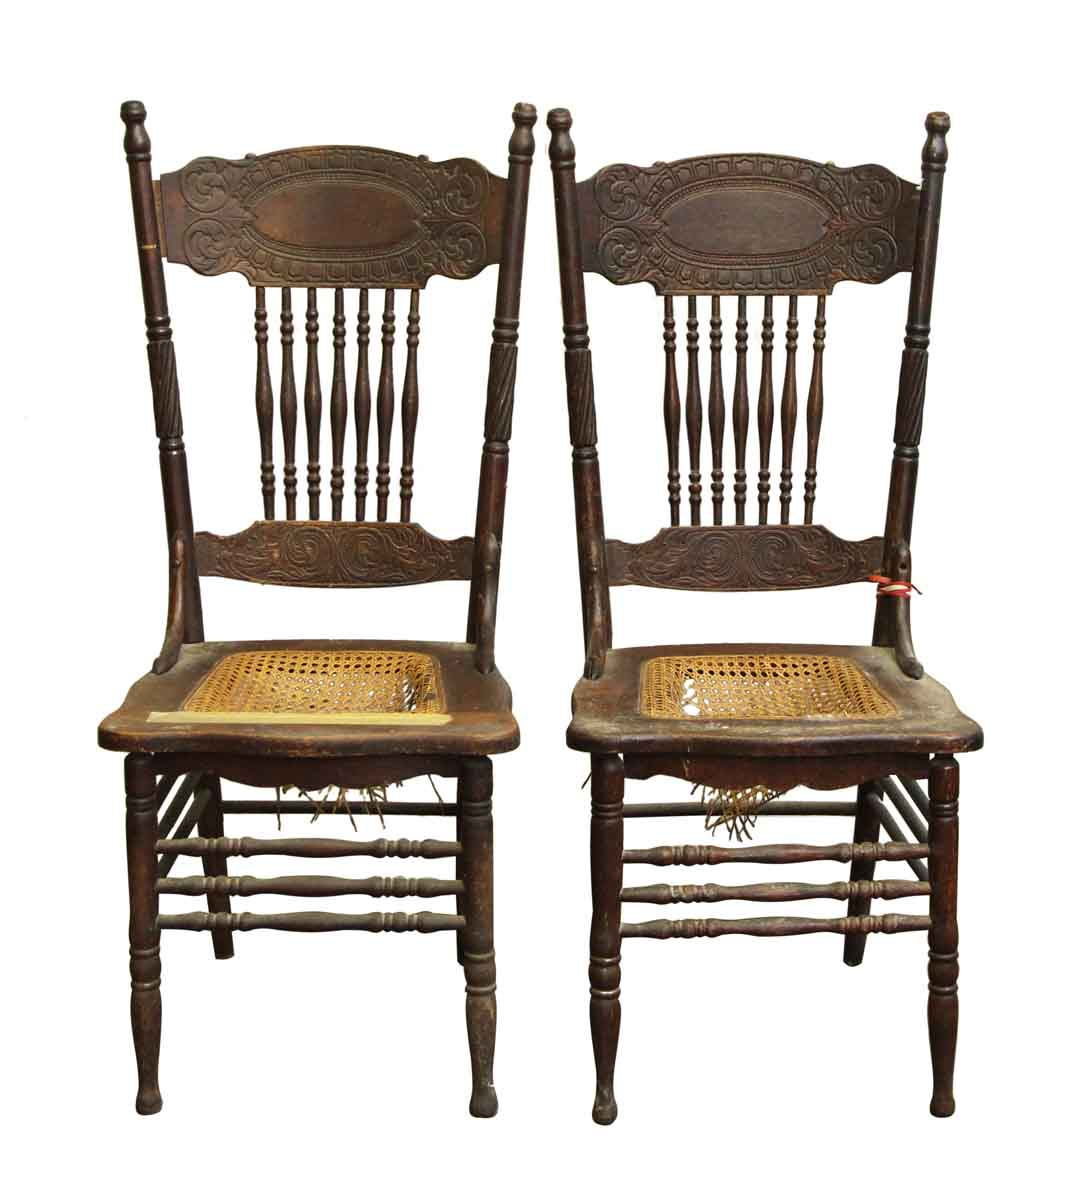 Vintage Wooden Chairs Pair Of Vintage Wooden Chairs Olde Good Things